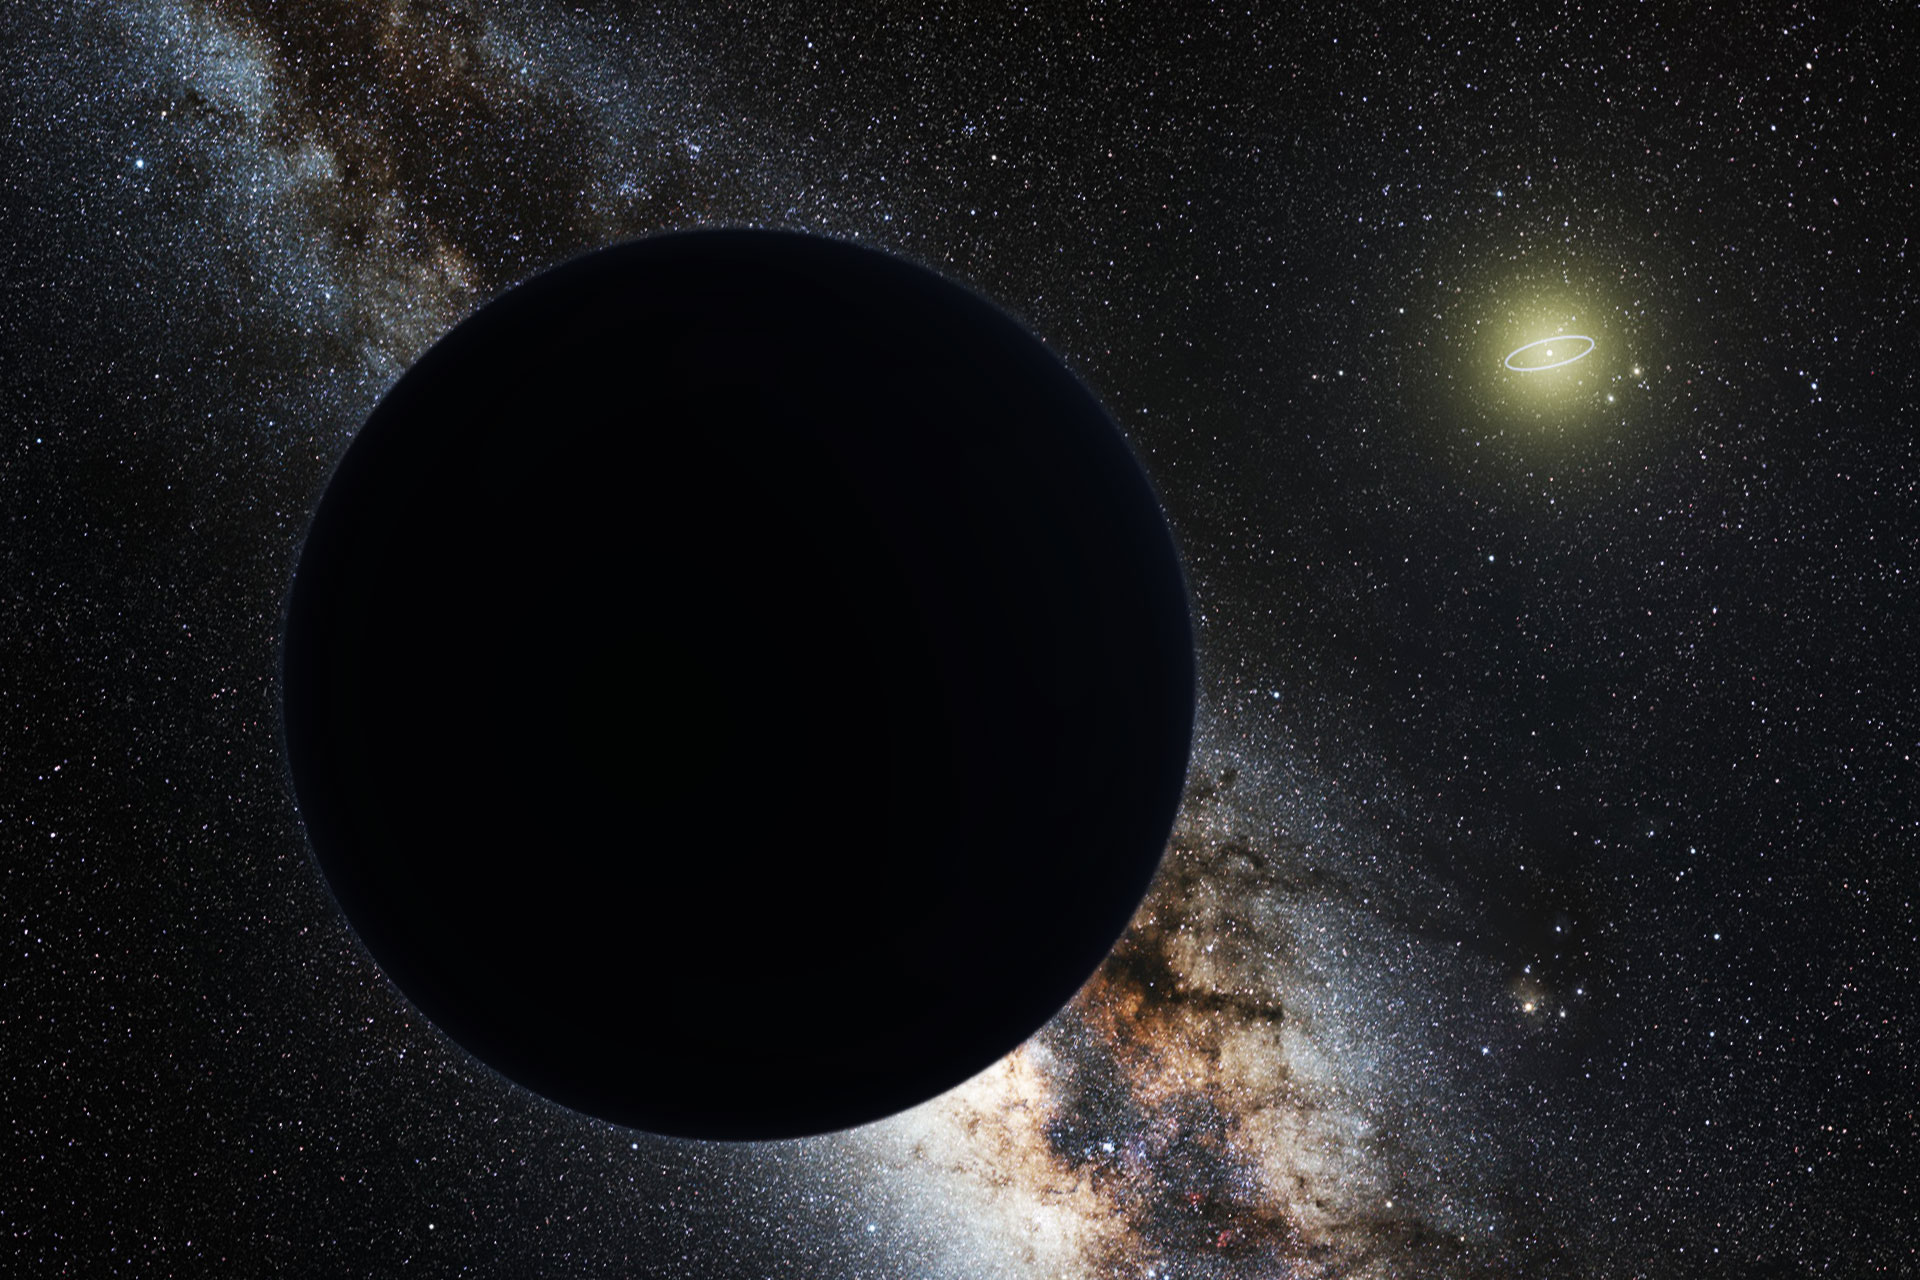 Artist's impression of Planet 9